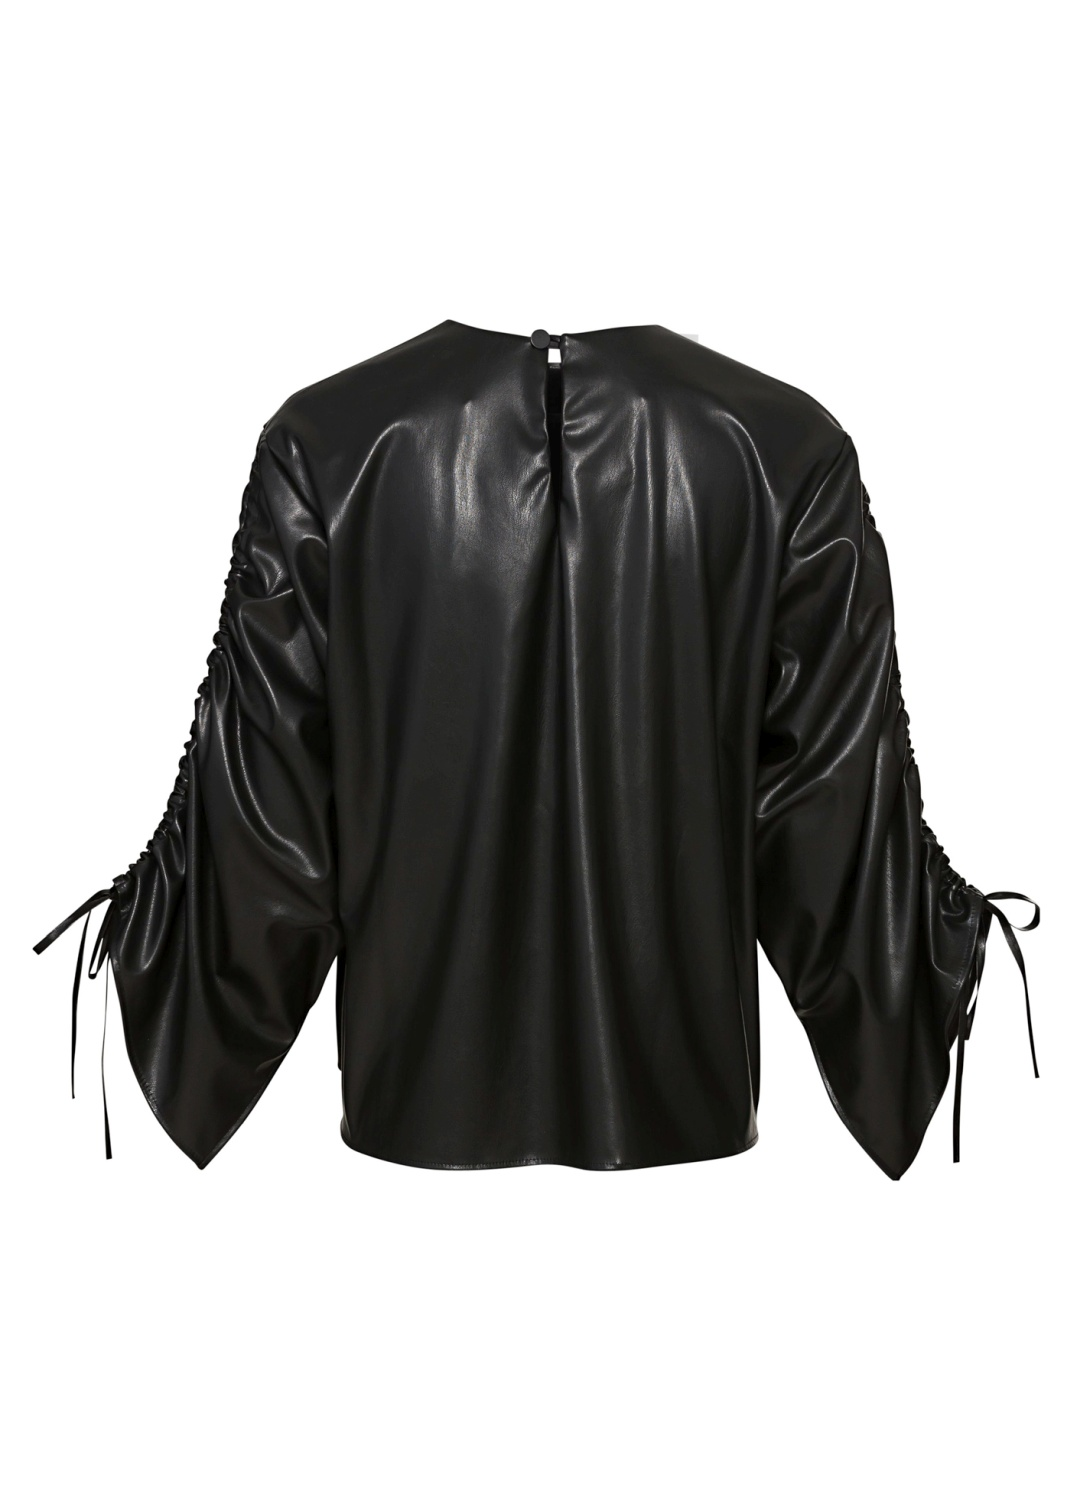 BLOUSE WITH STRINGS ON SLEEVES image number 1